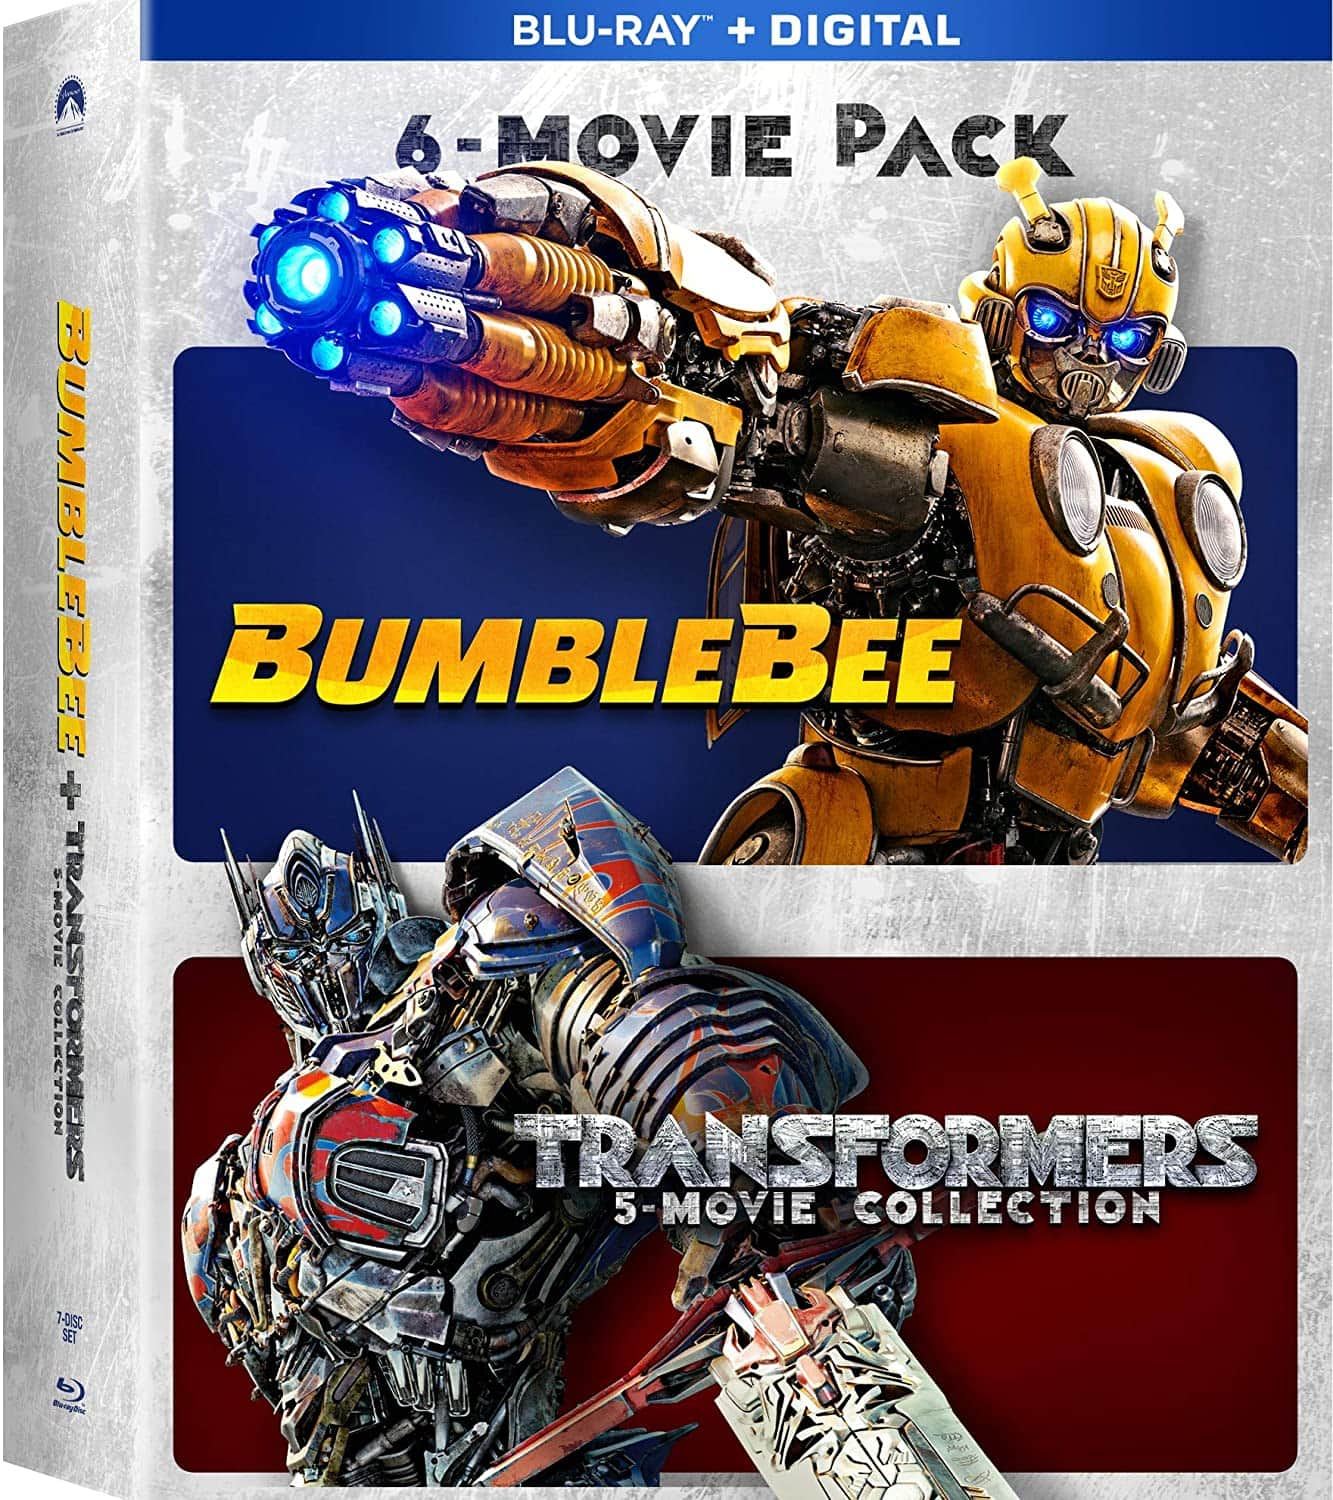 Prime Members: Bumblebee & Transformers Ultimate 6-Movie Collection (Blu-ray + Digital) $23.99 + Free Shipping